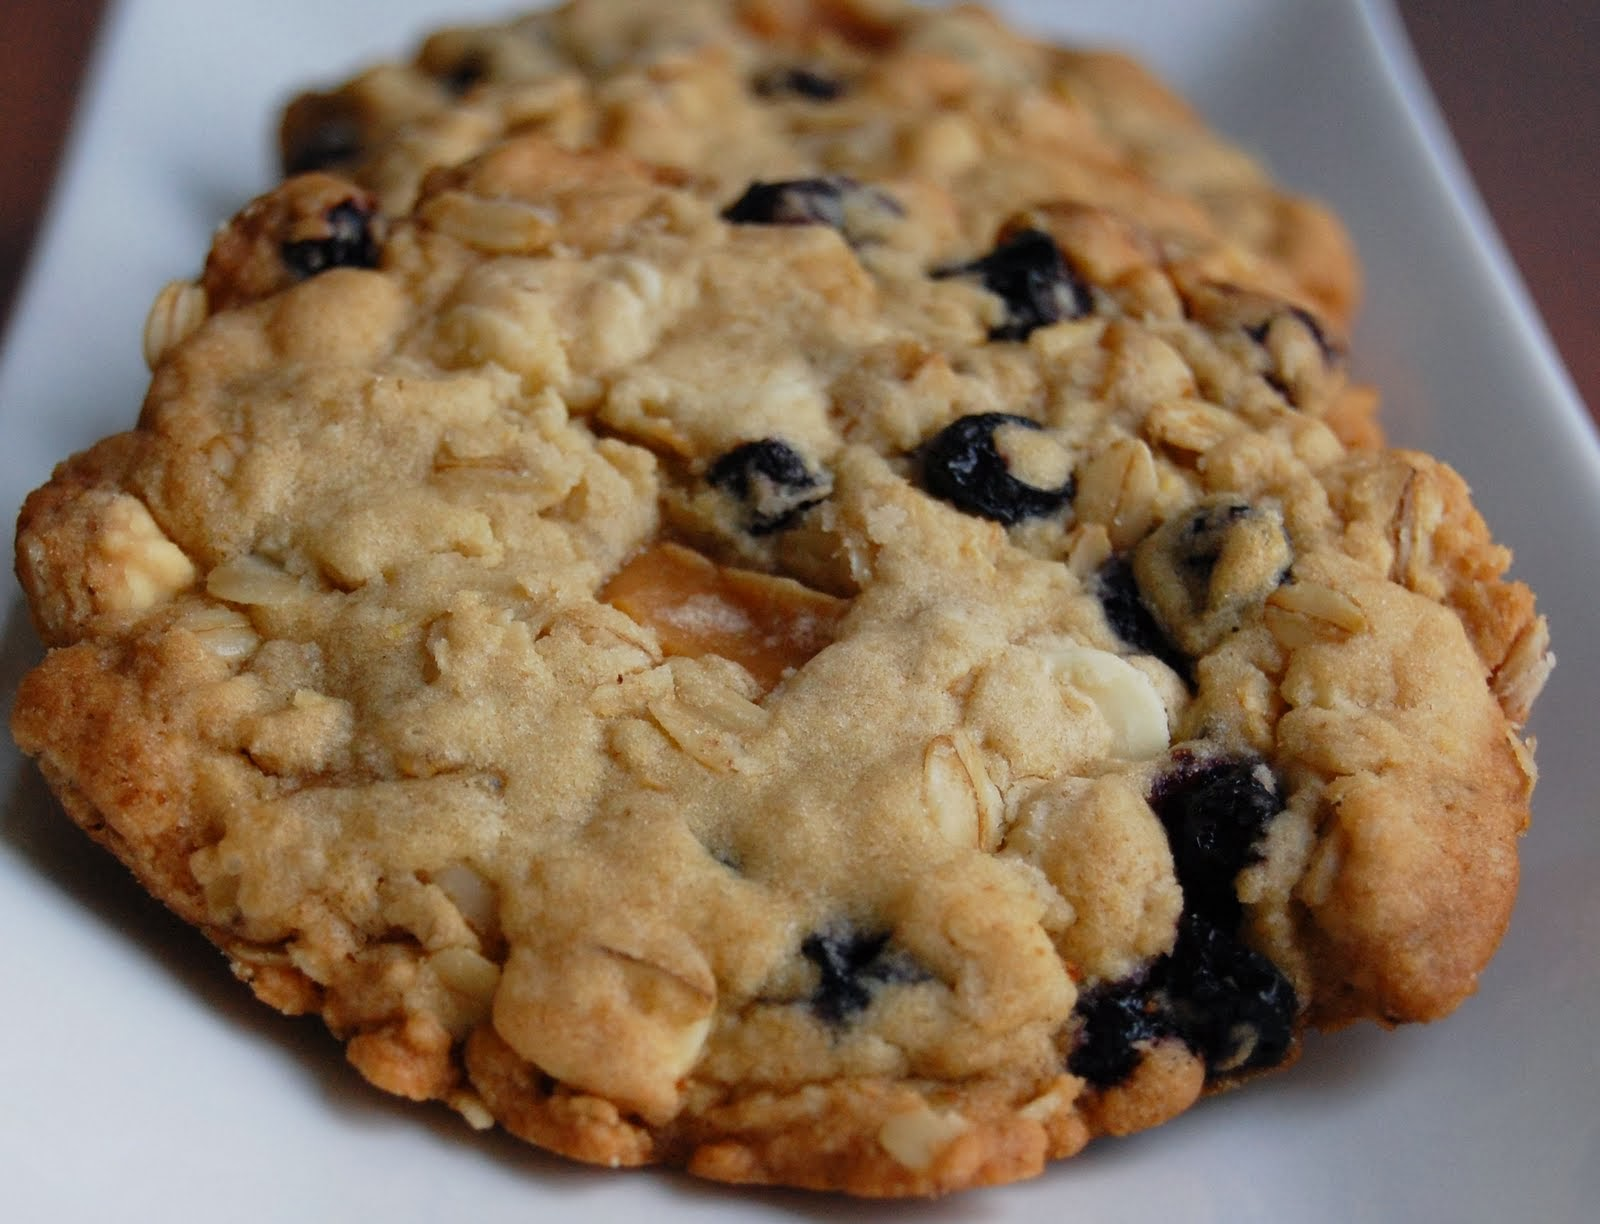 Blueberry, Caramel and White Chocolate Oatmeal Cookies | Cook'n is Fun ...